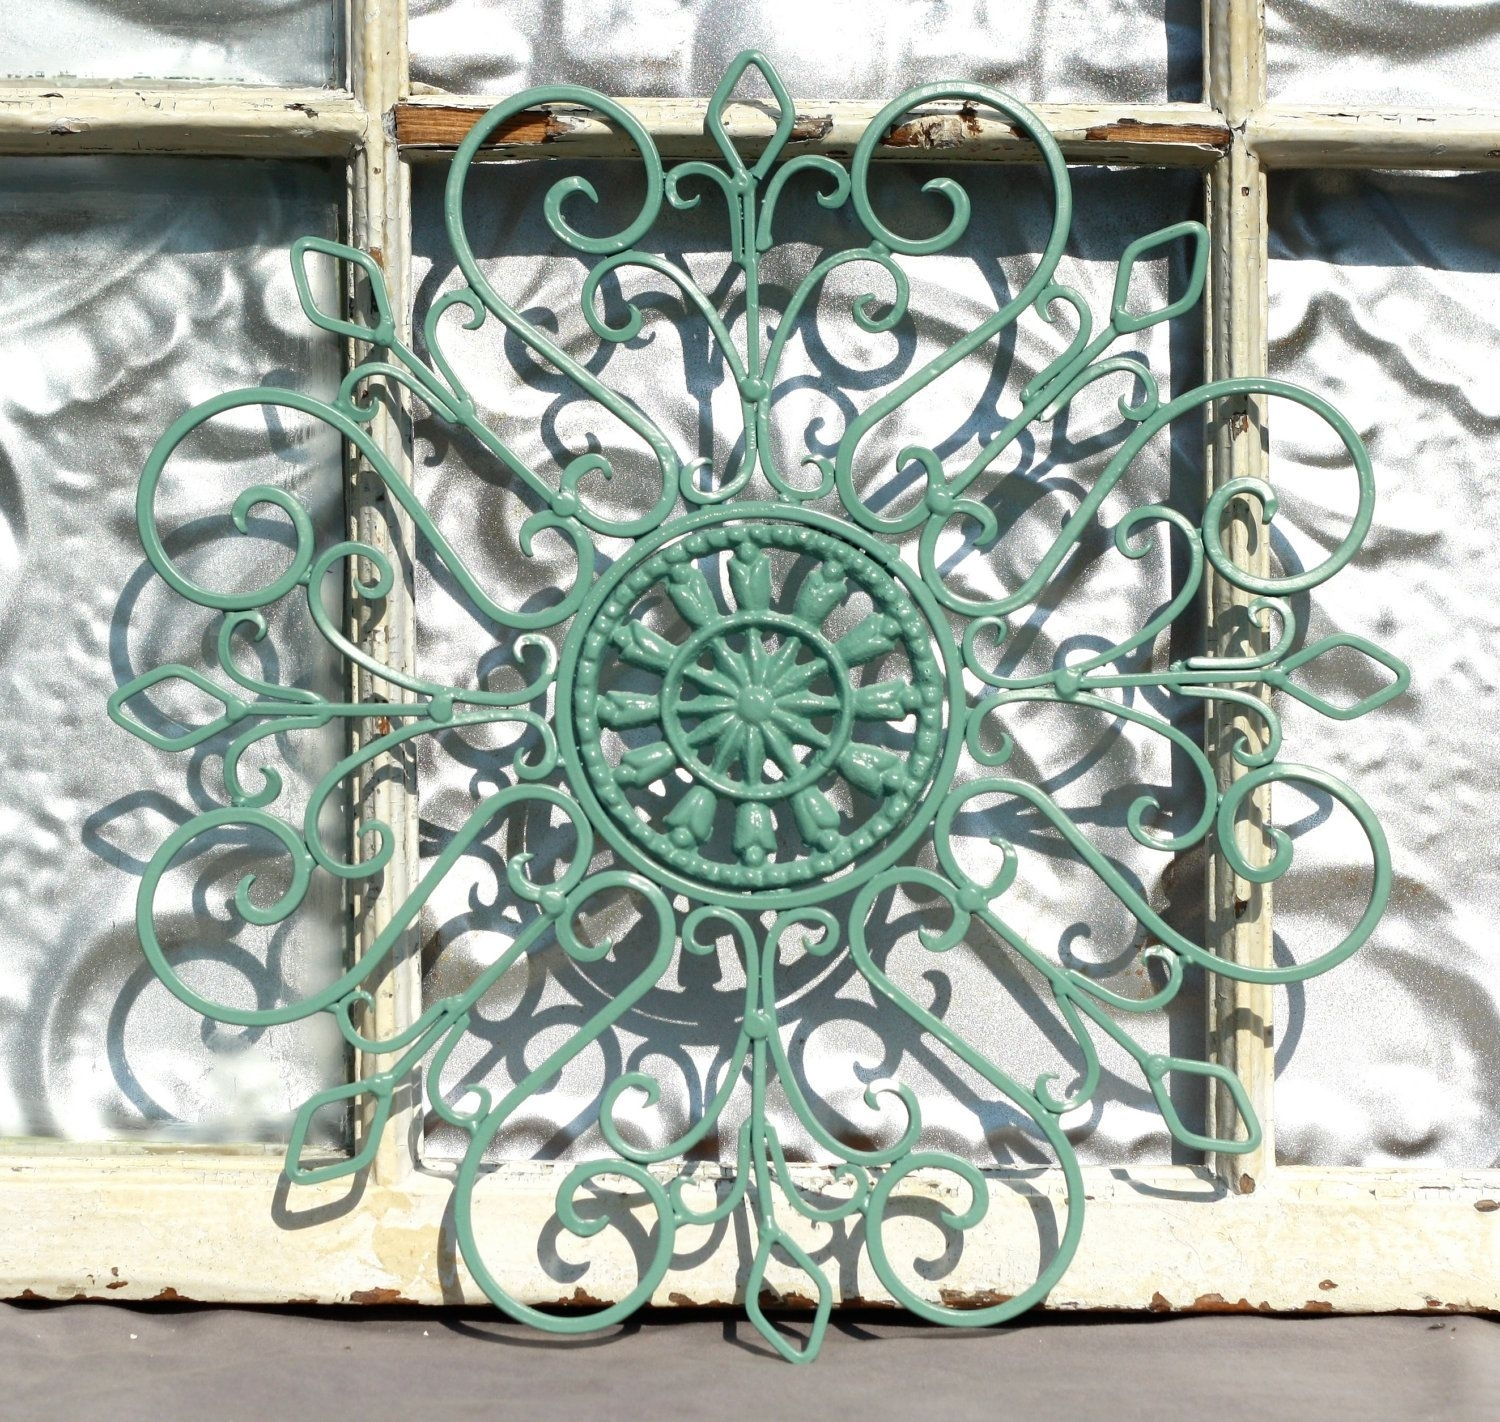 Wrought Iron Wall Decor/ Metal Wall Hanging/ Indoor/ Outdoor Metal Regarding Wrought Iron Wall Art (View 3 of 20)